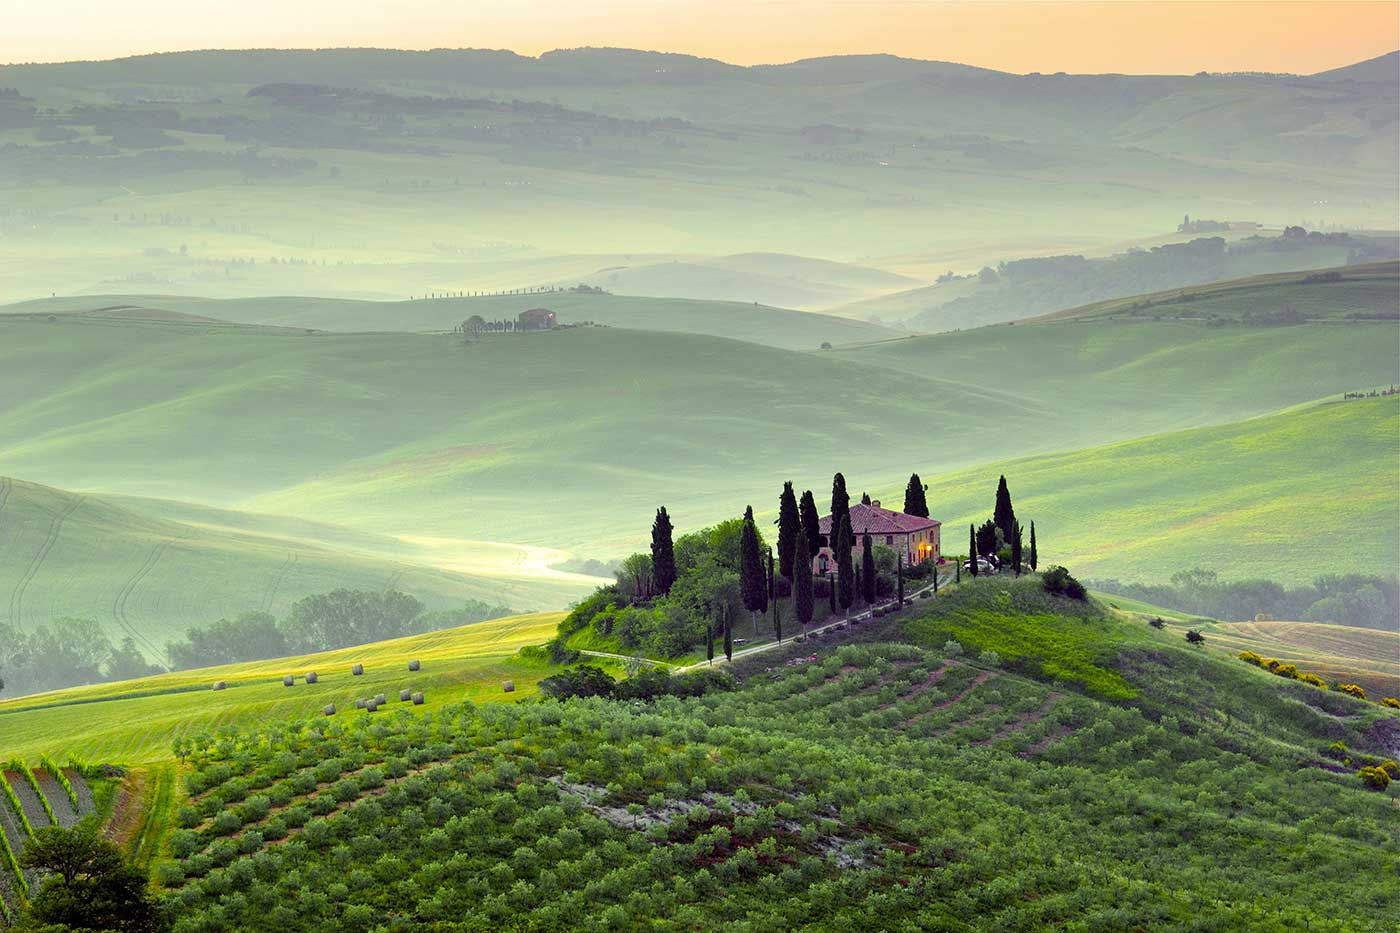 Italy Travel Costs & Prices - Art, Architecture, Wine